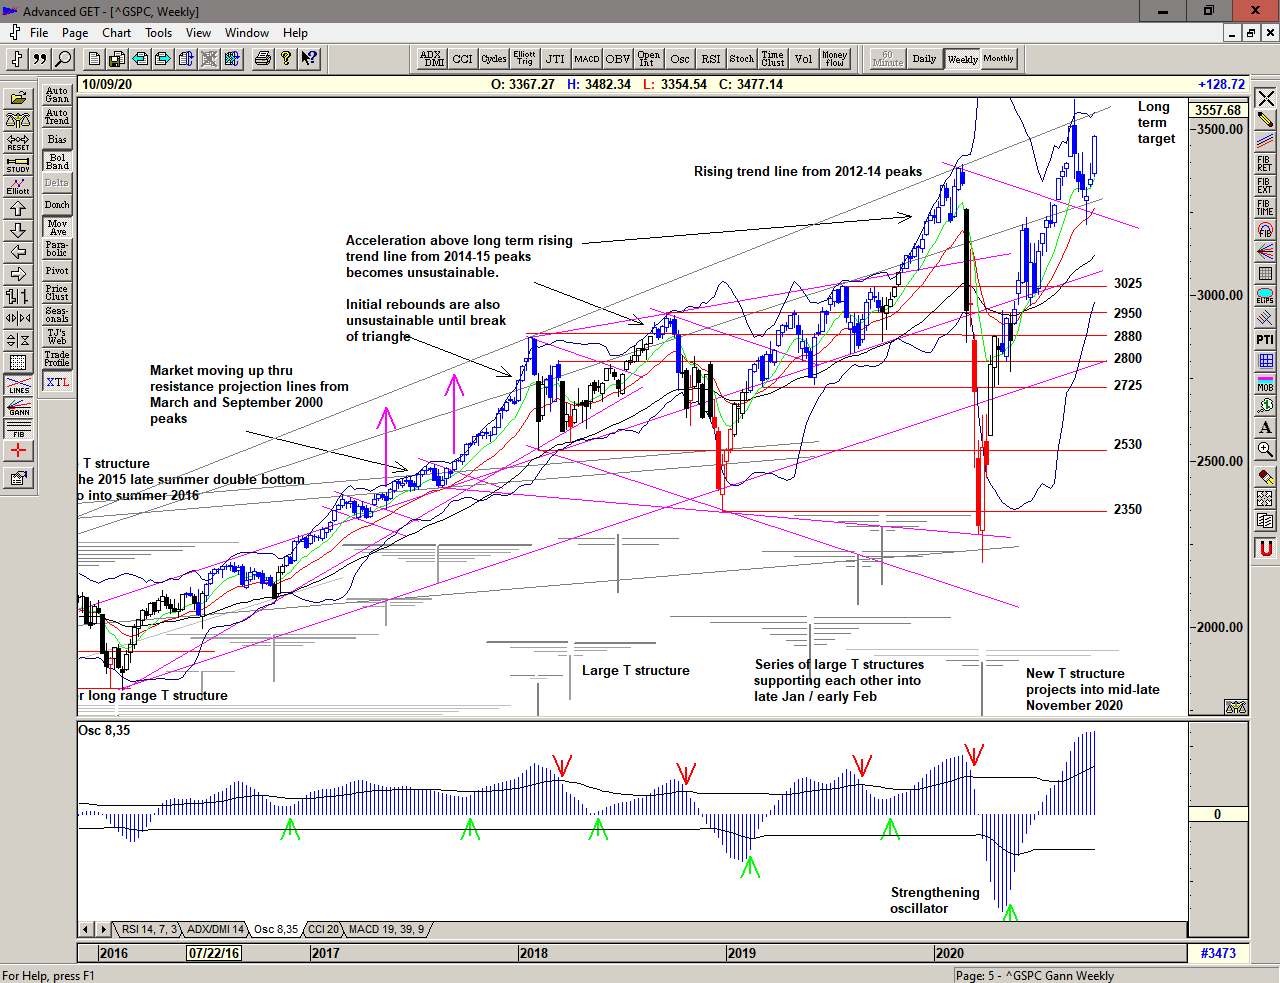 Weekly chart of S&P 500 for 12 October 2020